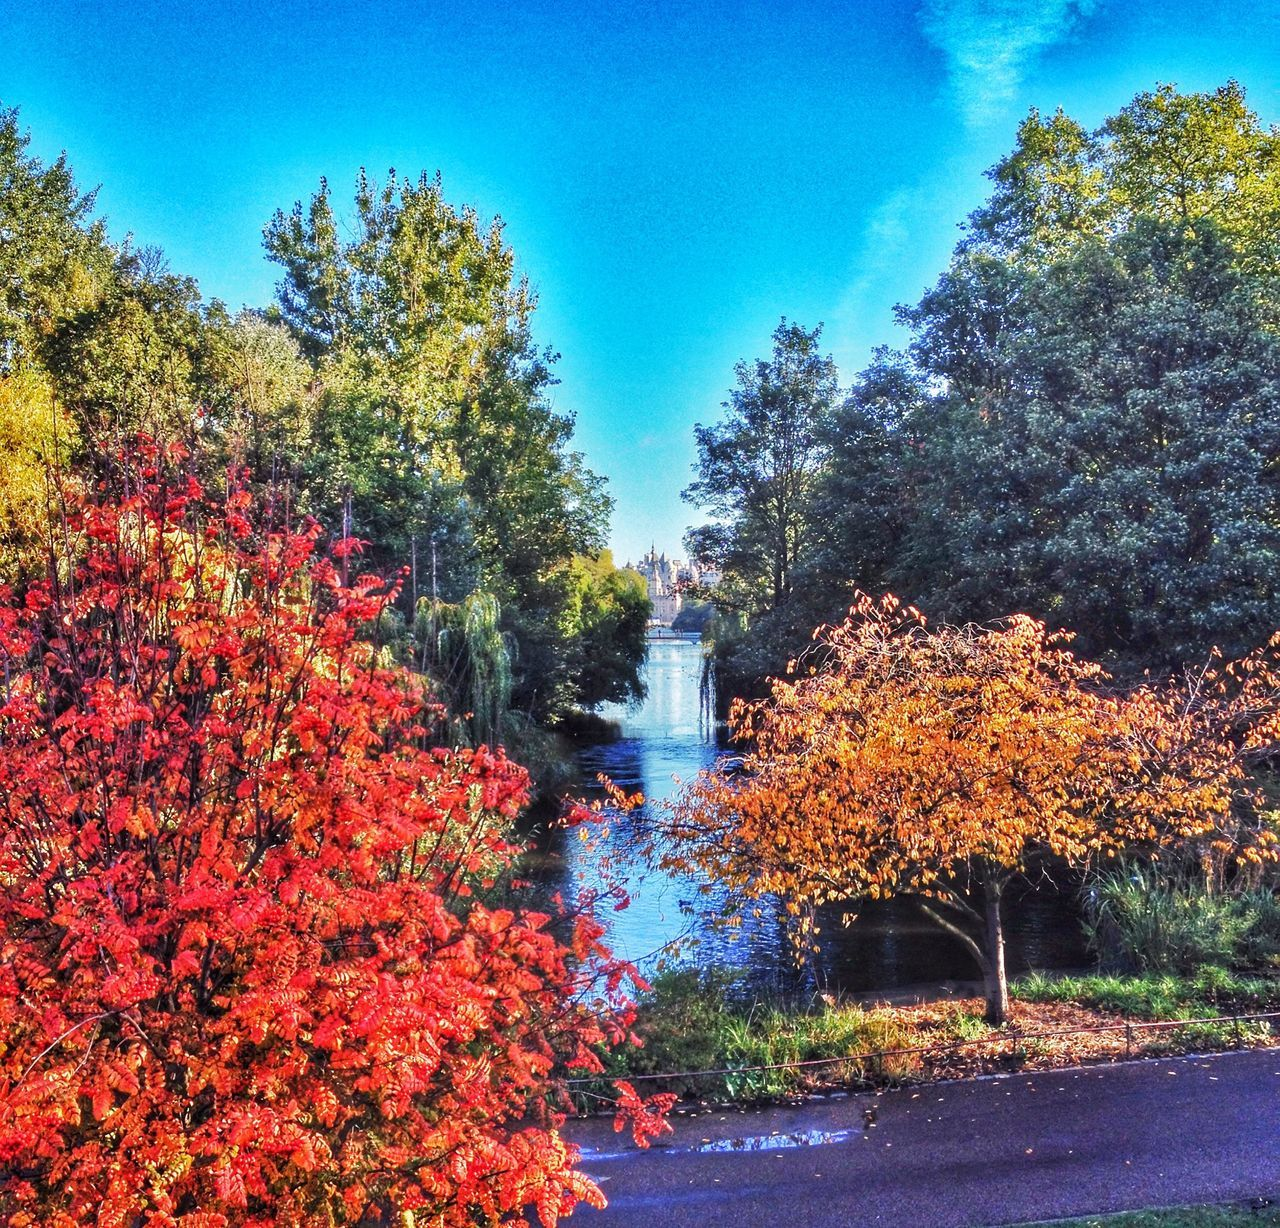 tree, autumn, growth, change, nature, beauty in nature, tranquility, outdoors, no people, plant, flower, day, sky